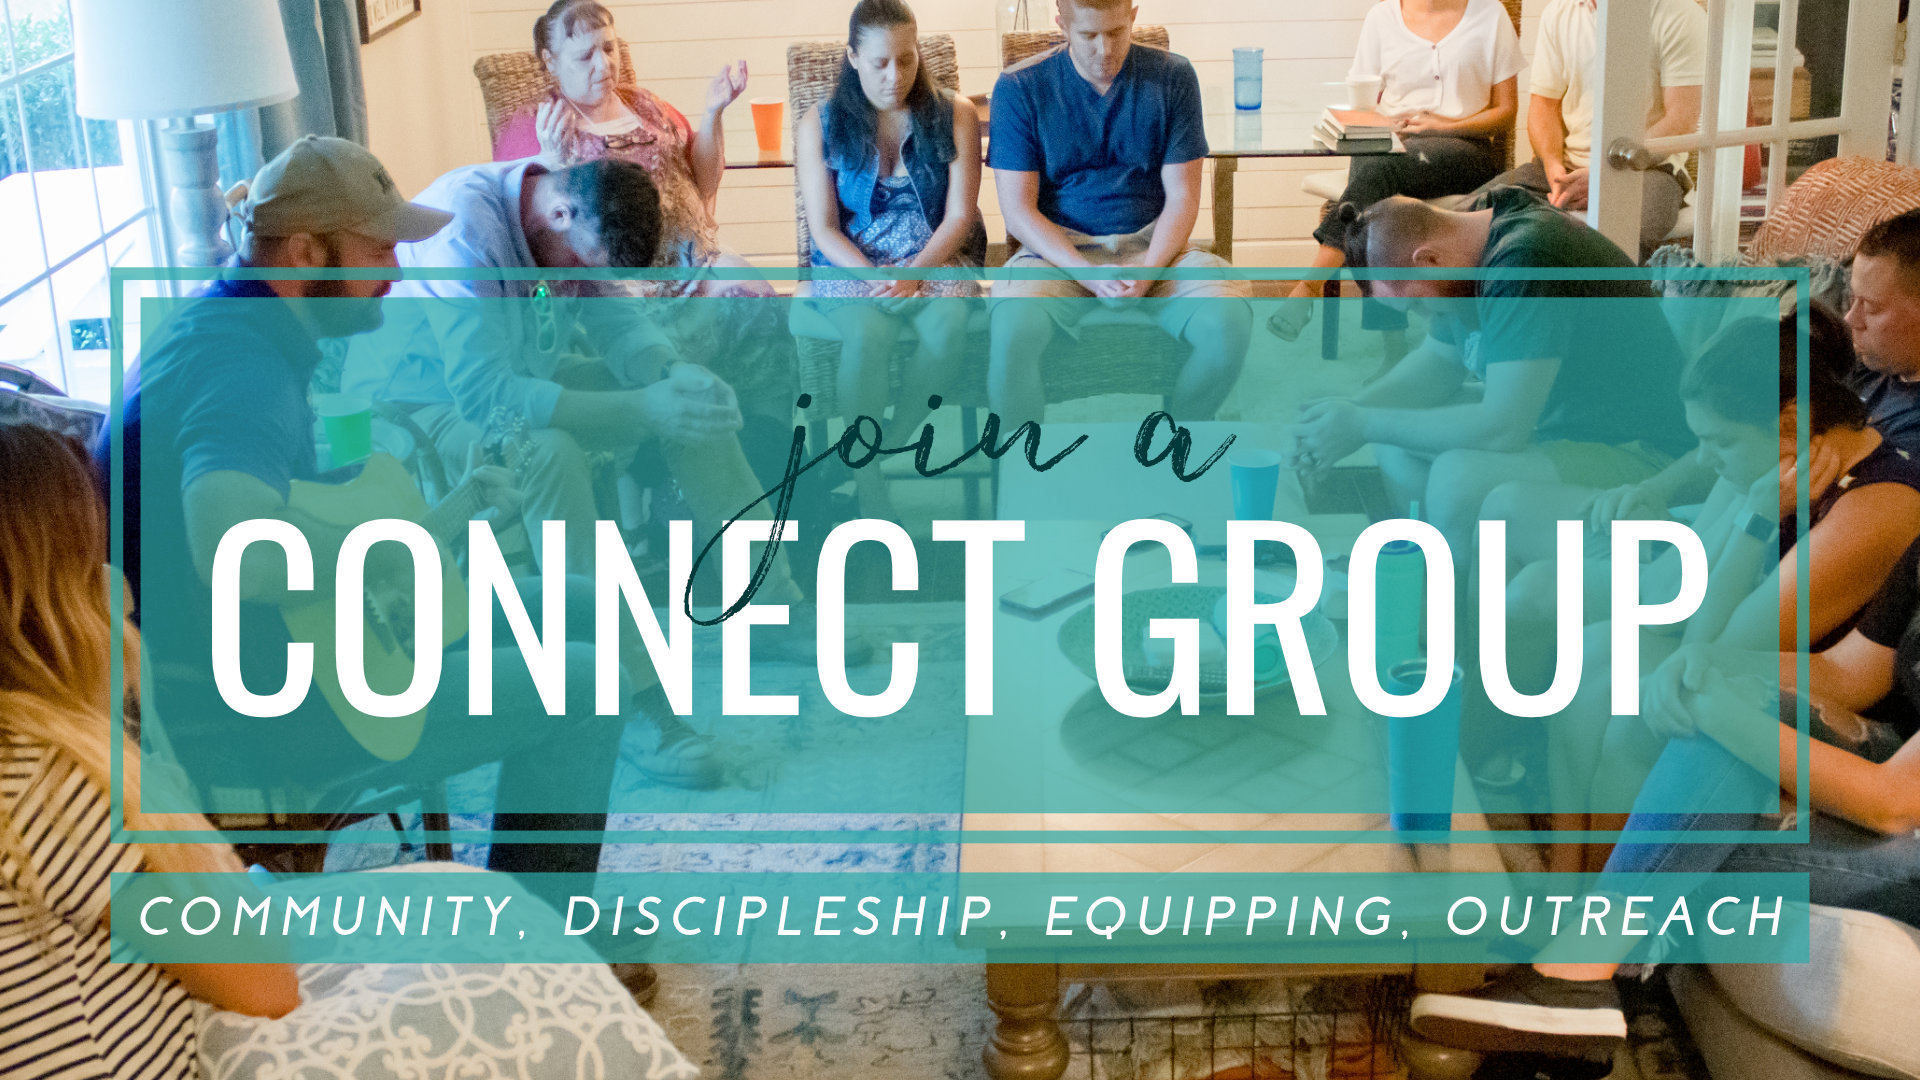 Join a Connect Group. Community, discipleship, equipping, outreach